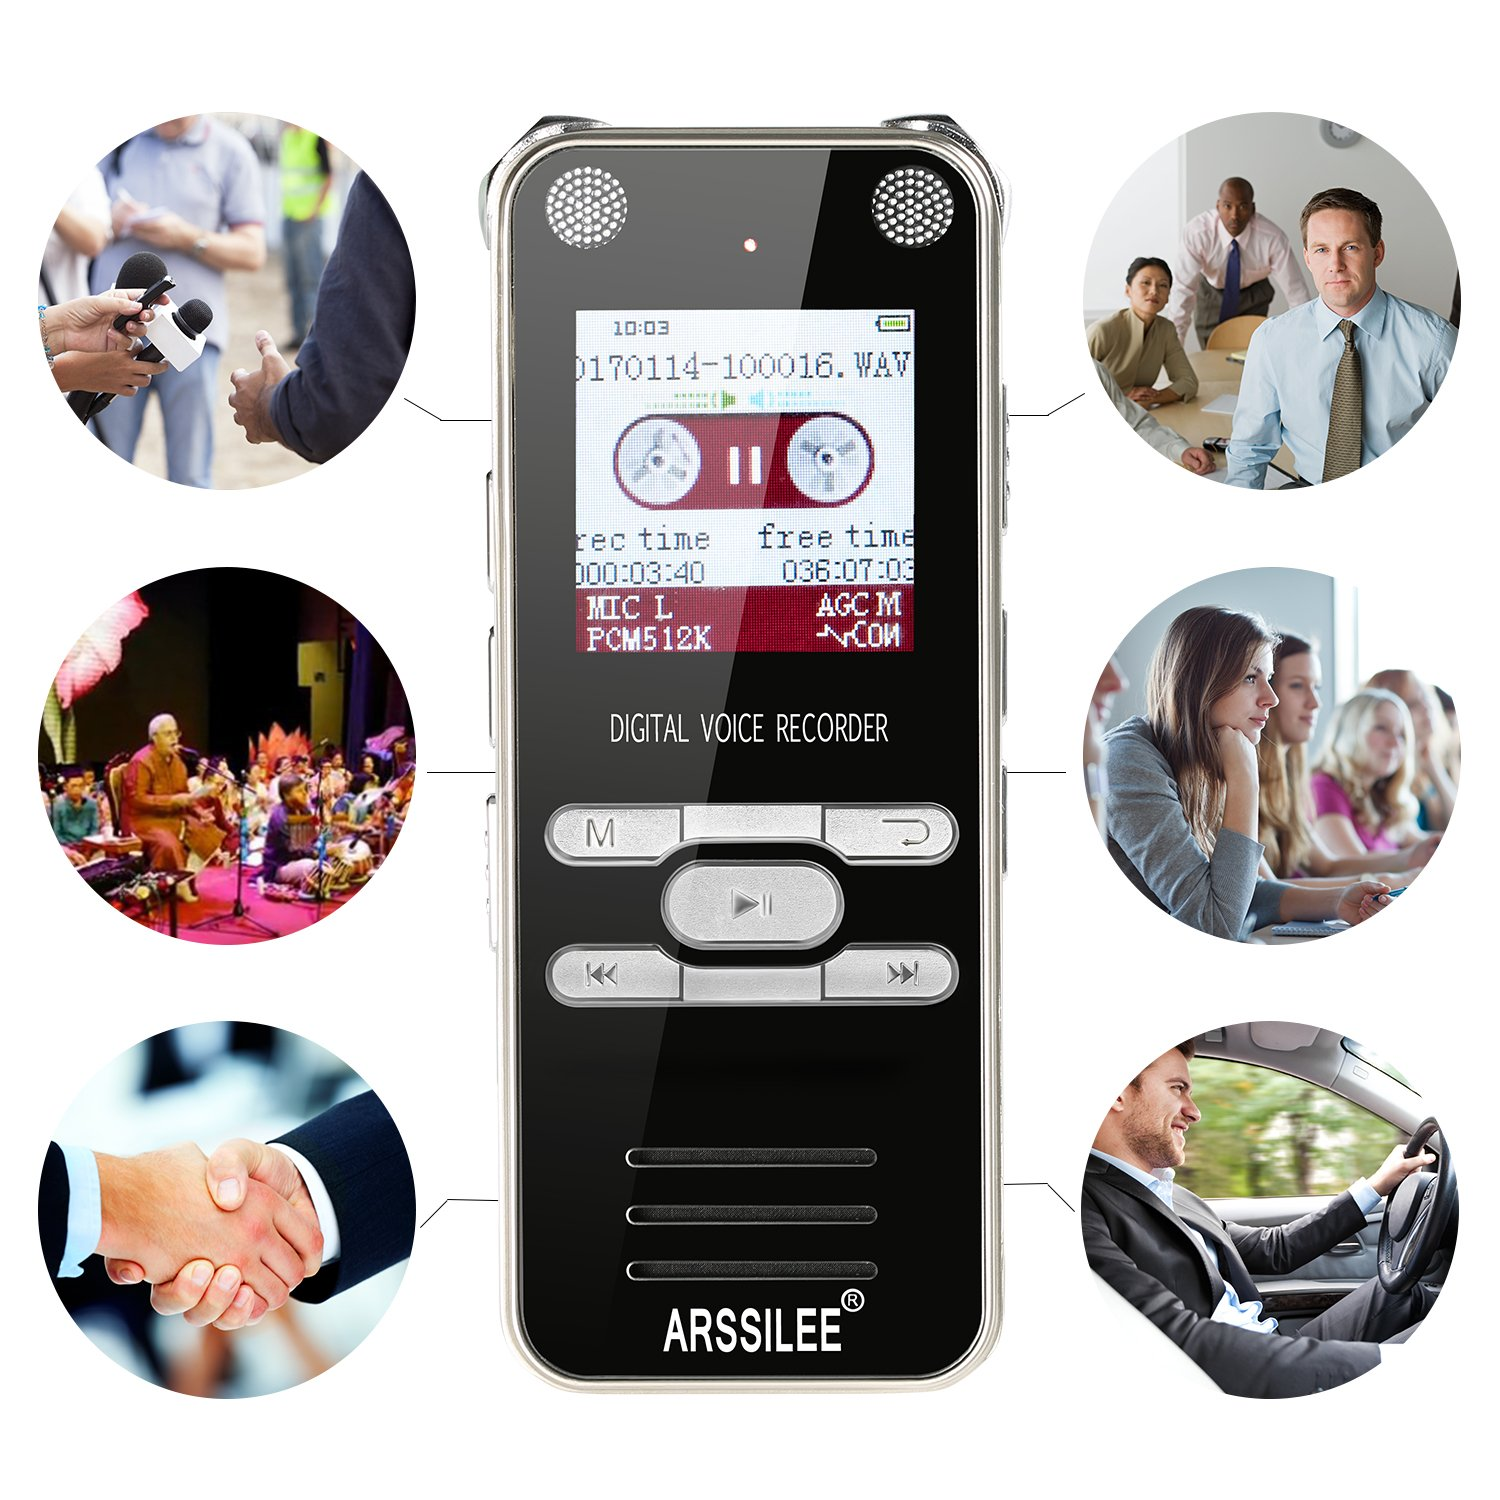 Digital Voice Recorder Pen, Pocket Audio Recorder 8GB Miniature Sound Recorder 1536KB PCM HD, Portable Mp3 Player Voice Recorder For Meetings,Lectures, Interview, By-Arssilee